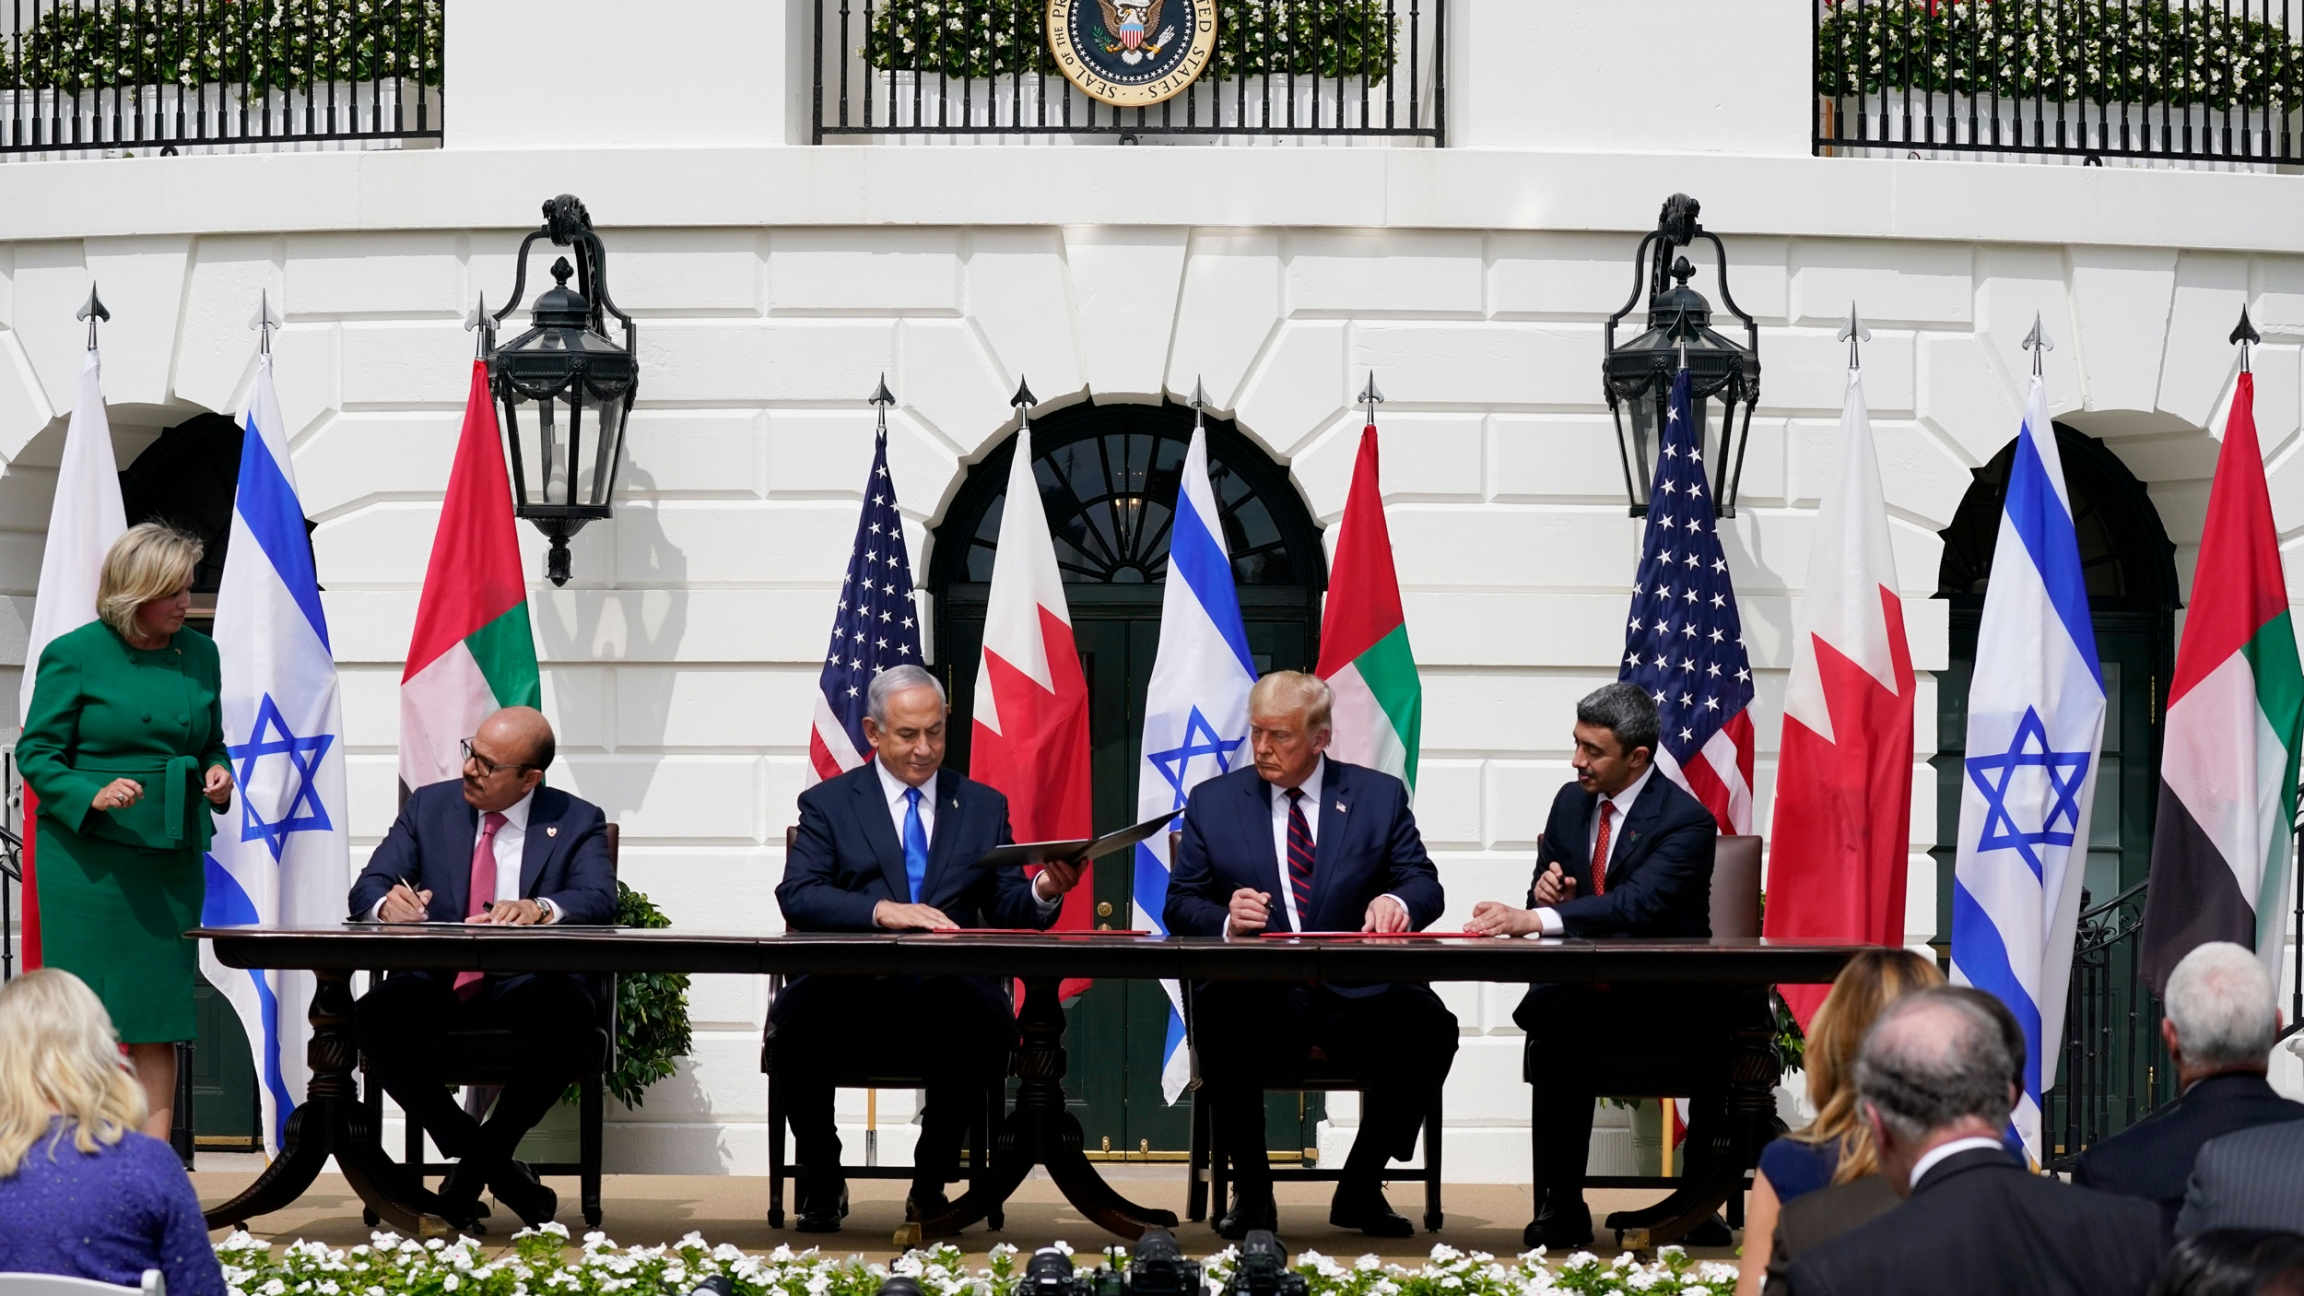 The leaders of the US, UAE, Israel and Bahrain are shown wearing suits and sitting at a table signing documents with flags from each country behind them.